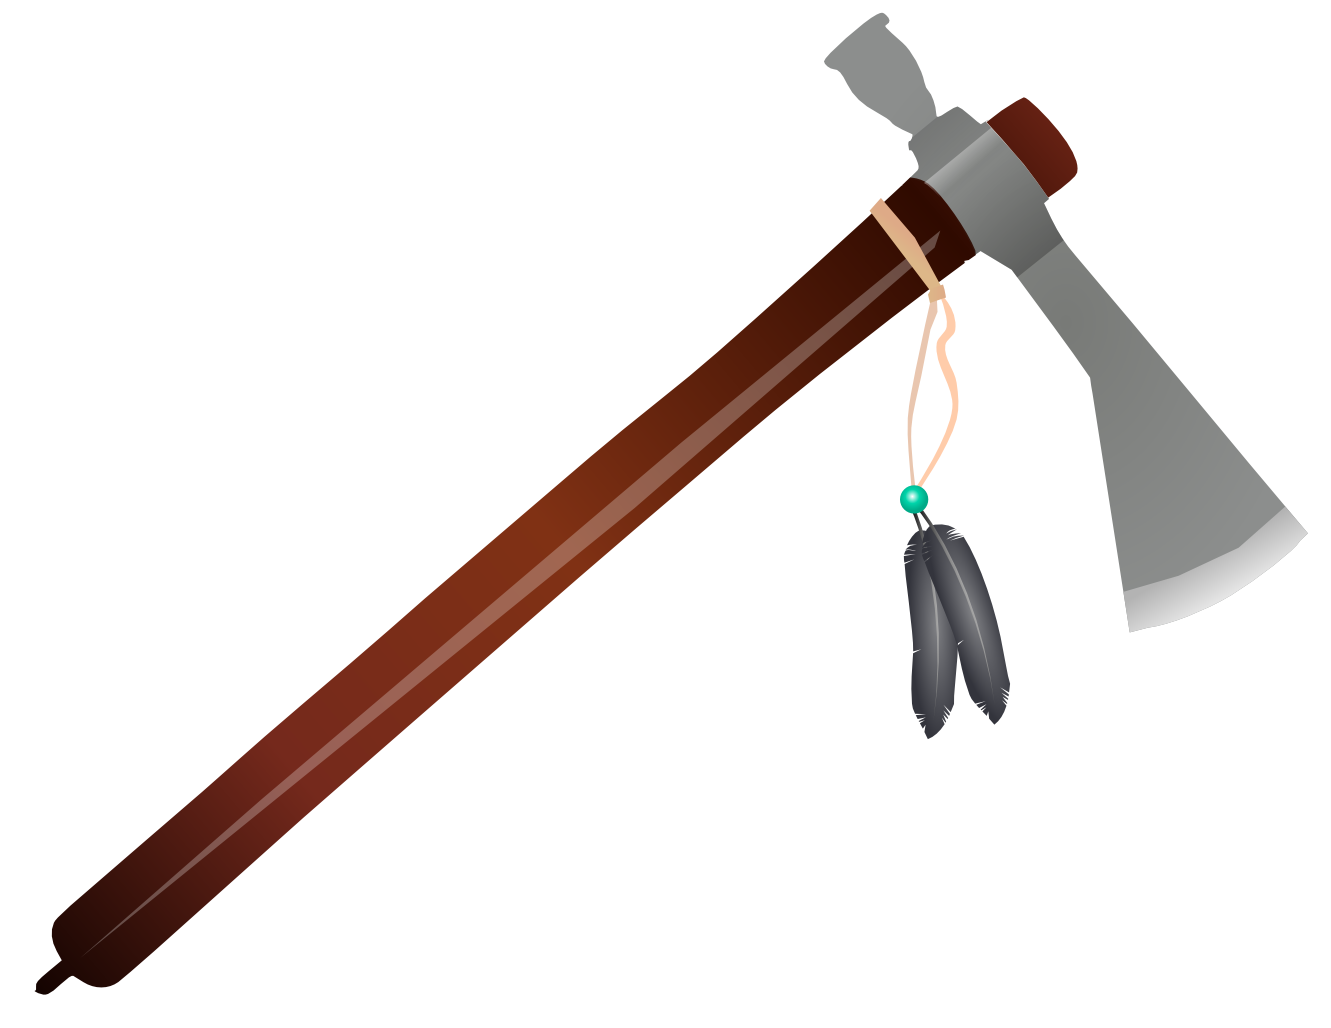 Axe clipart tomahawk Images tomahawk%20clipart Free 20clipart Tomahawk